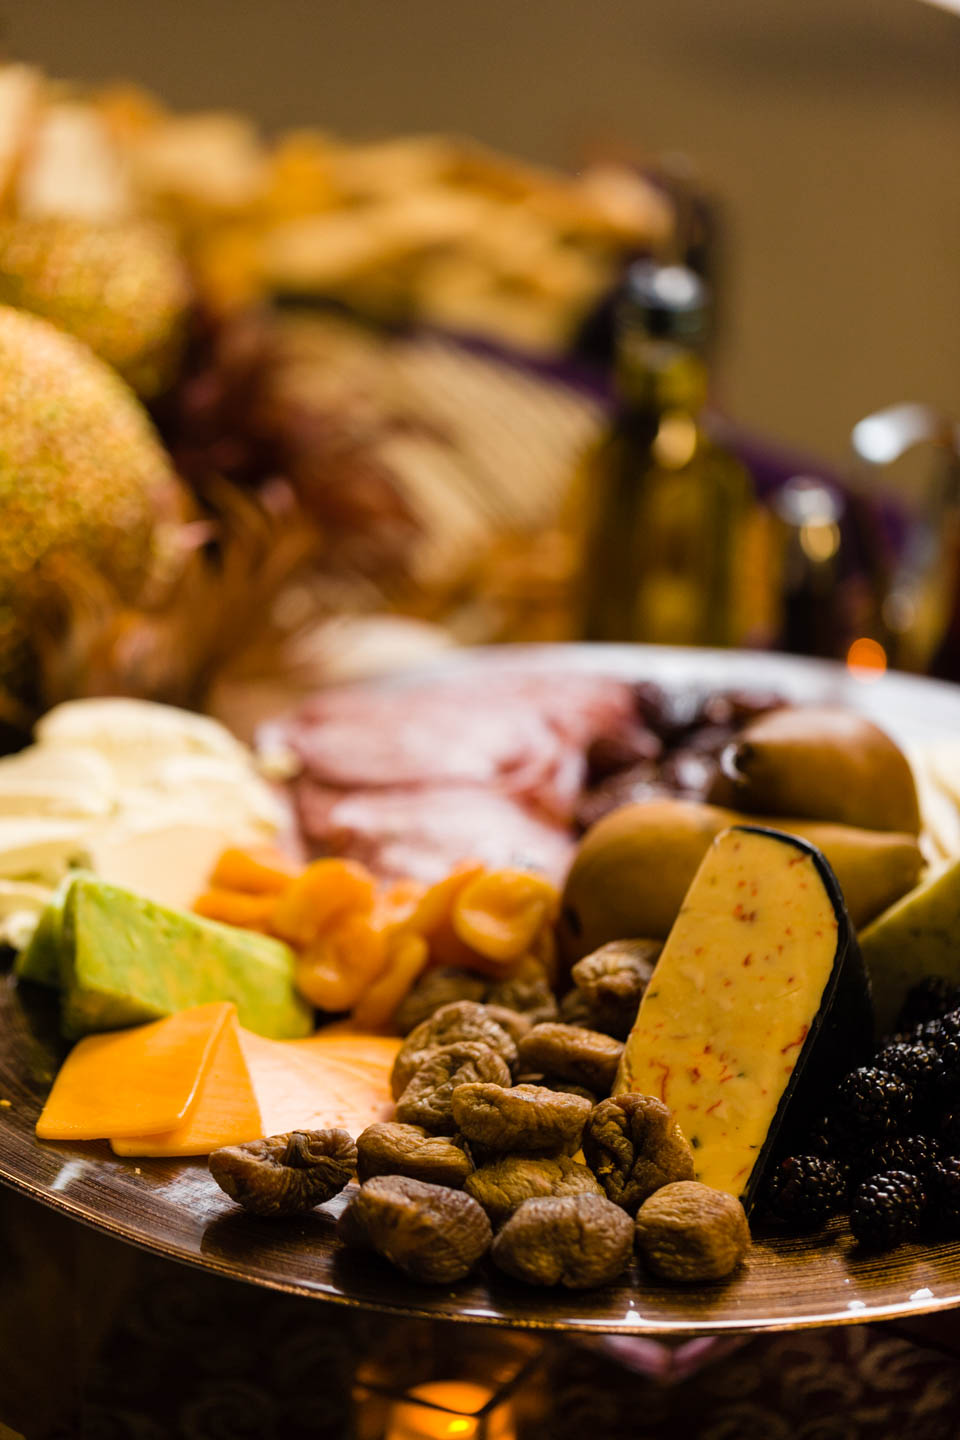 Cheeses and catering by Le Croissant Catering